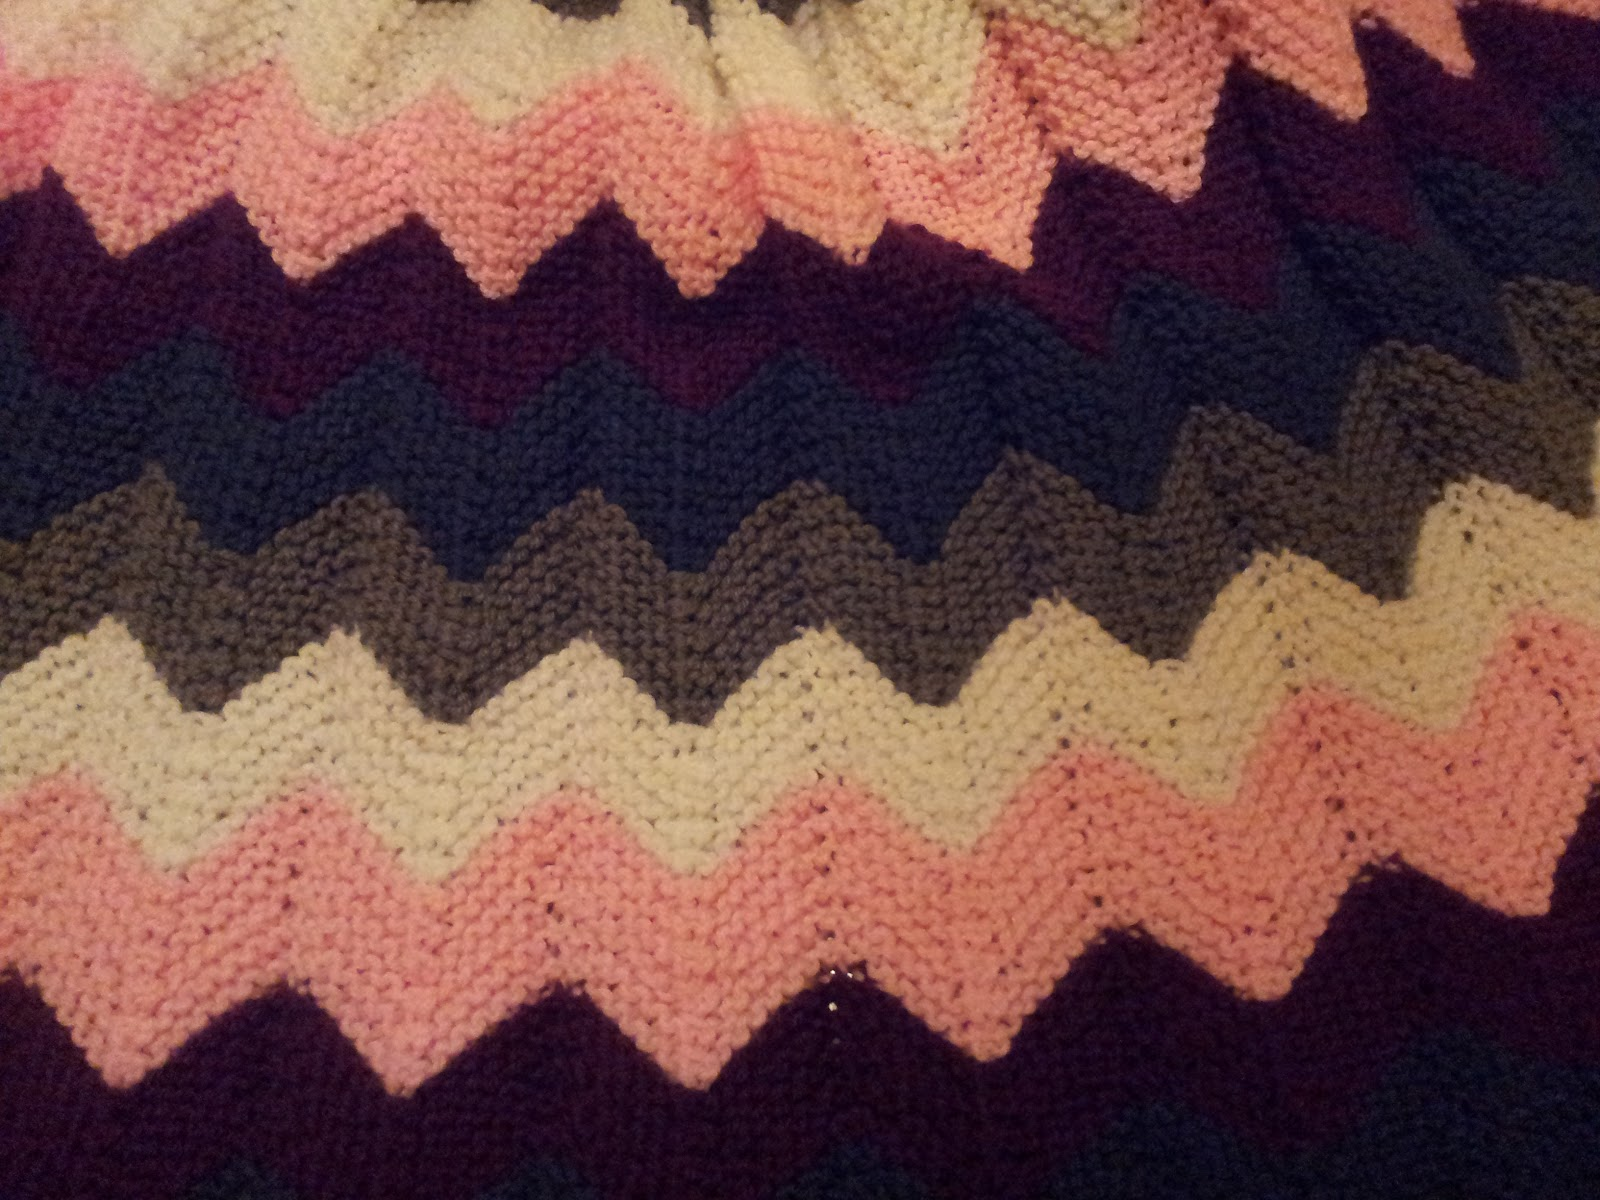 Chevron Afghan Pattern Knit : Mosier Farms: Knitted Chevron (ripple) Afghan